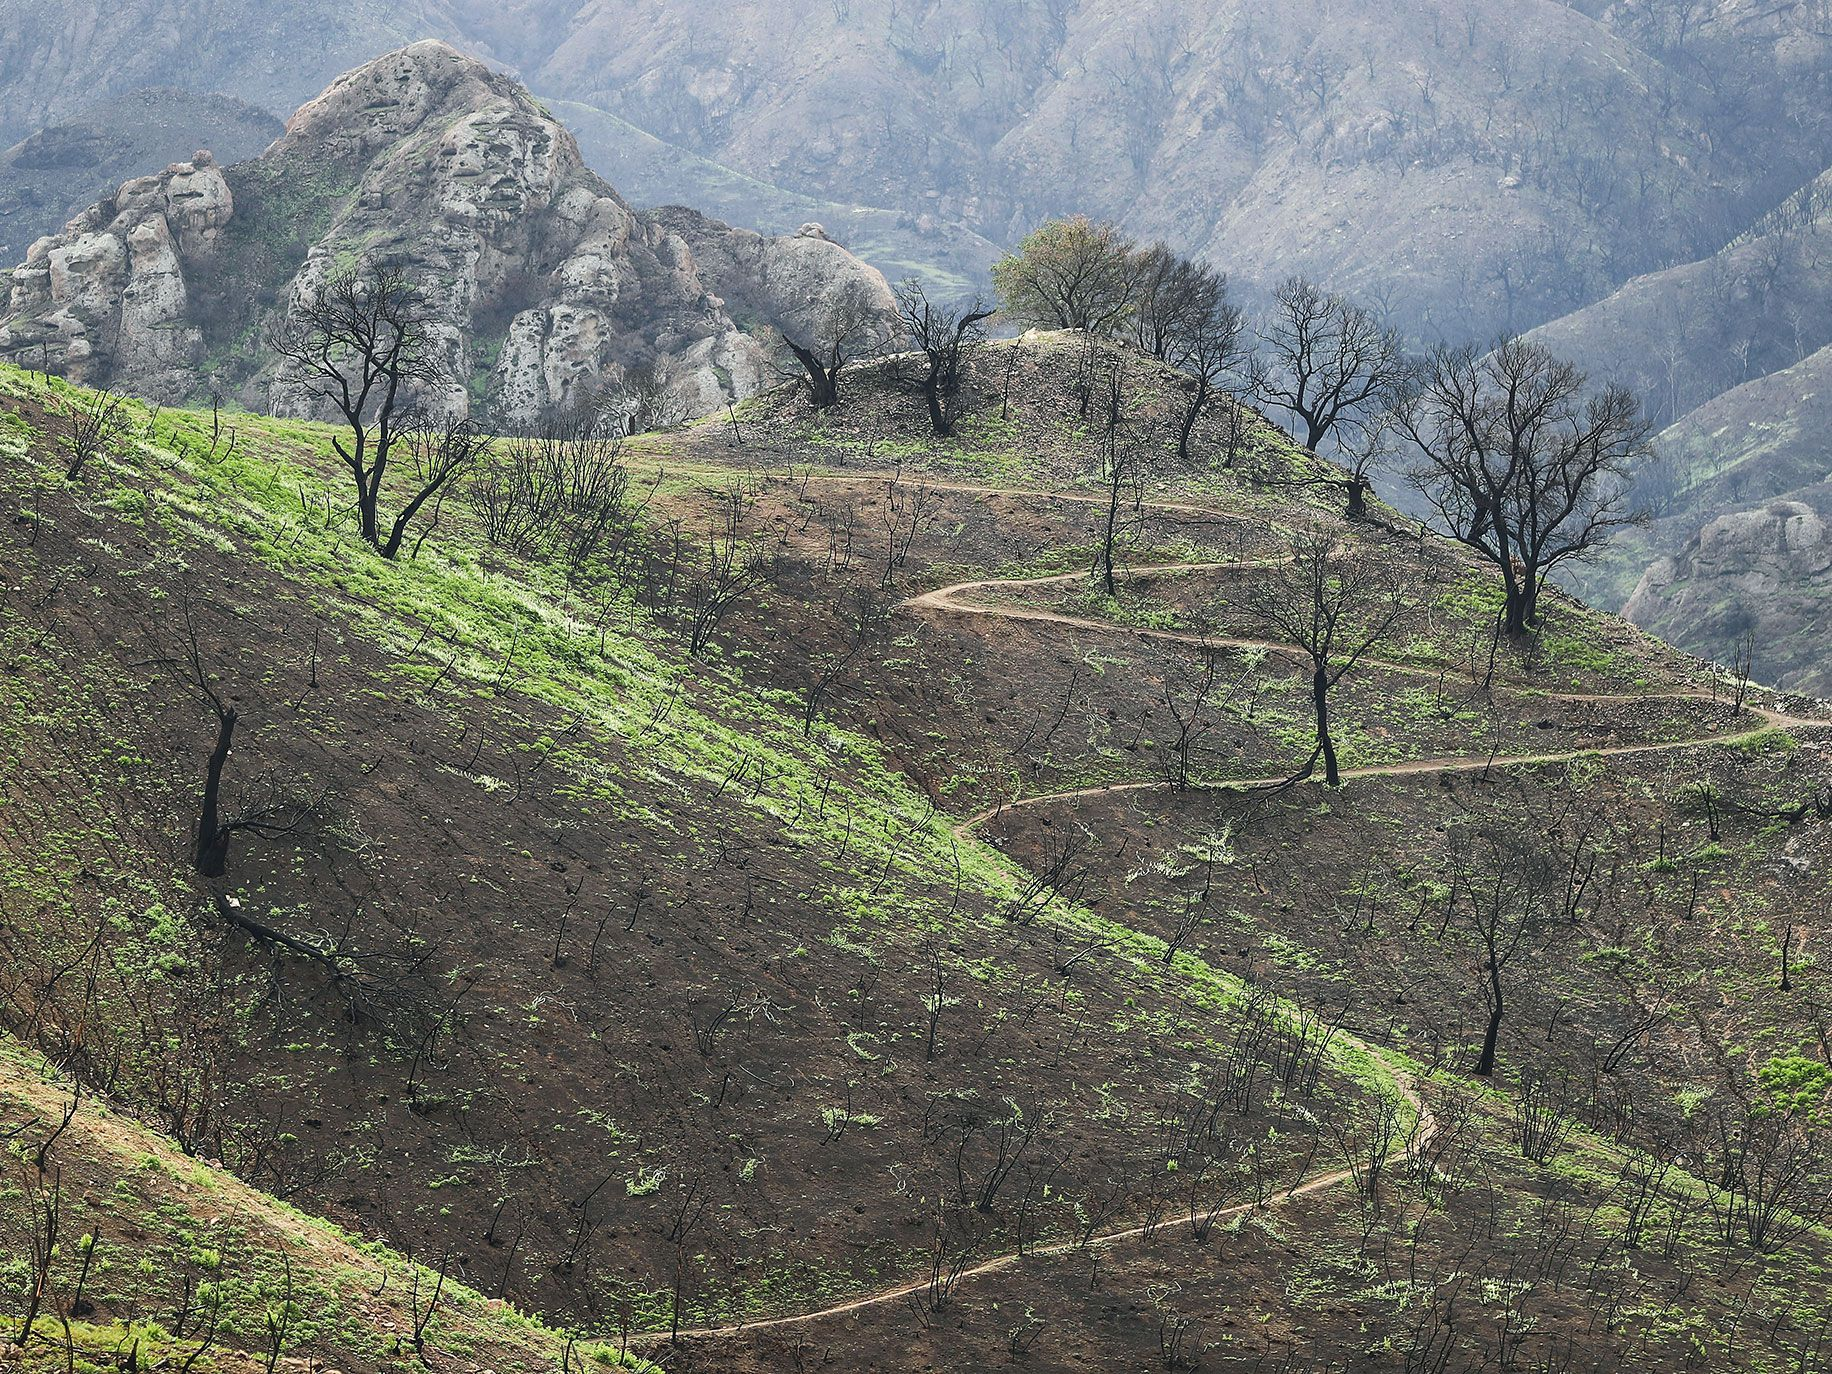 New vegetation sprouts in a Woolsey Fire burn area at Malibu Creek State Park in the Santa Monica Mountains on February 27, 2019 near Malibu, California. Significant winter rainfall, after years of drought, has helped spur fresh growth in the burn areas which measure more than 150 square miles. The fire ignited November 8, 2018 and burned almost half the total land in the Santa Monica Mountains.